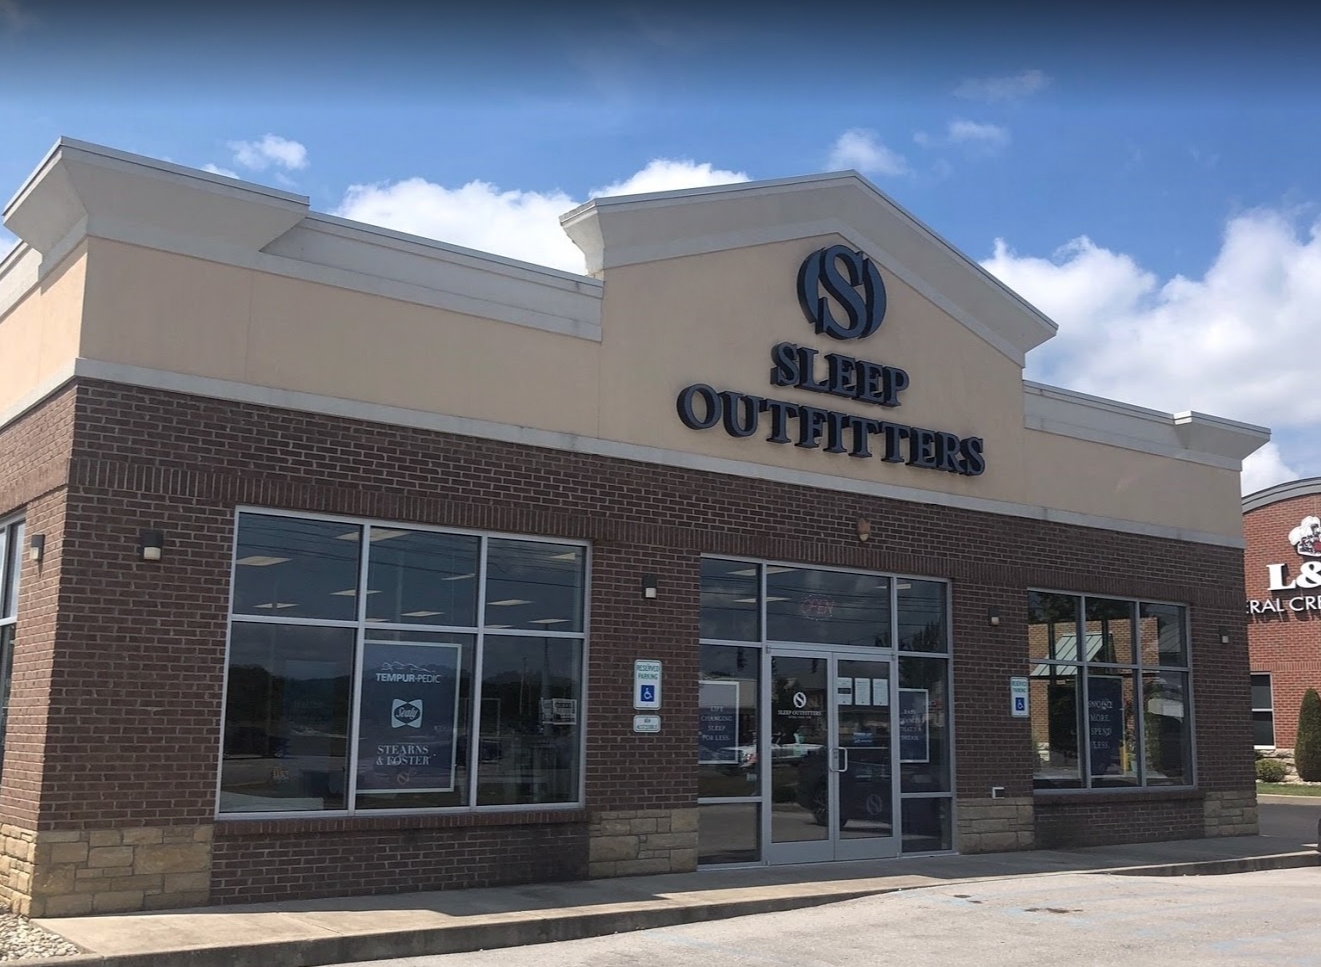 Sleep Outfitters Somerset